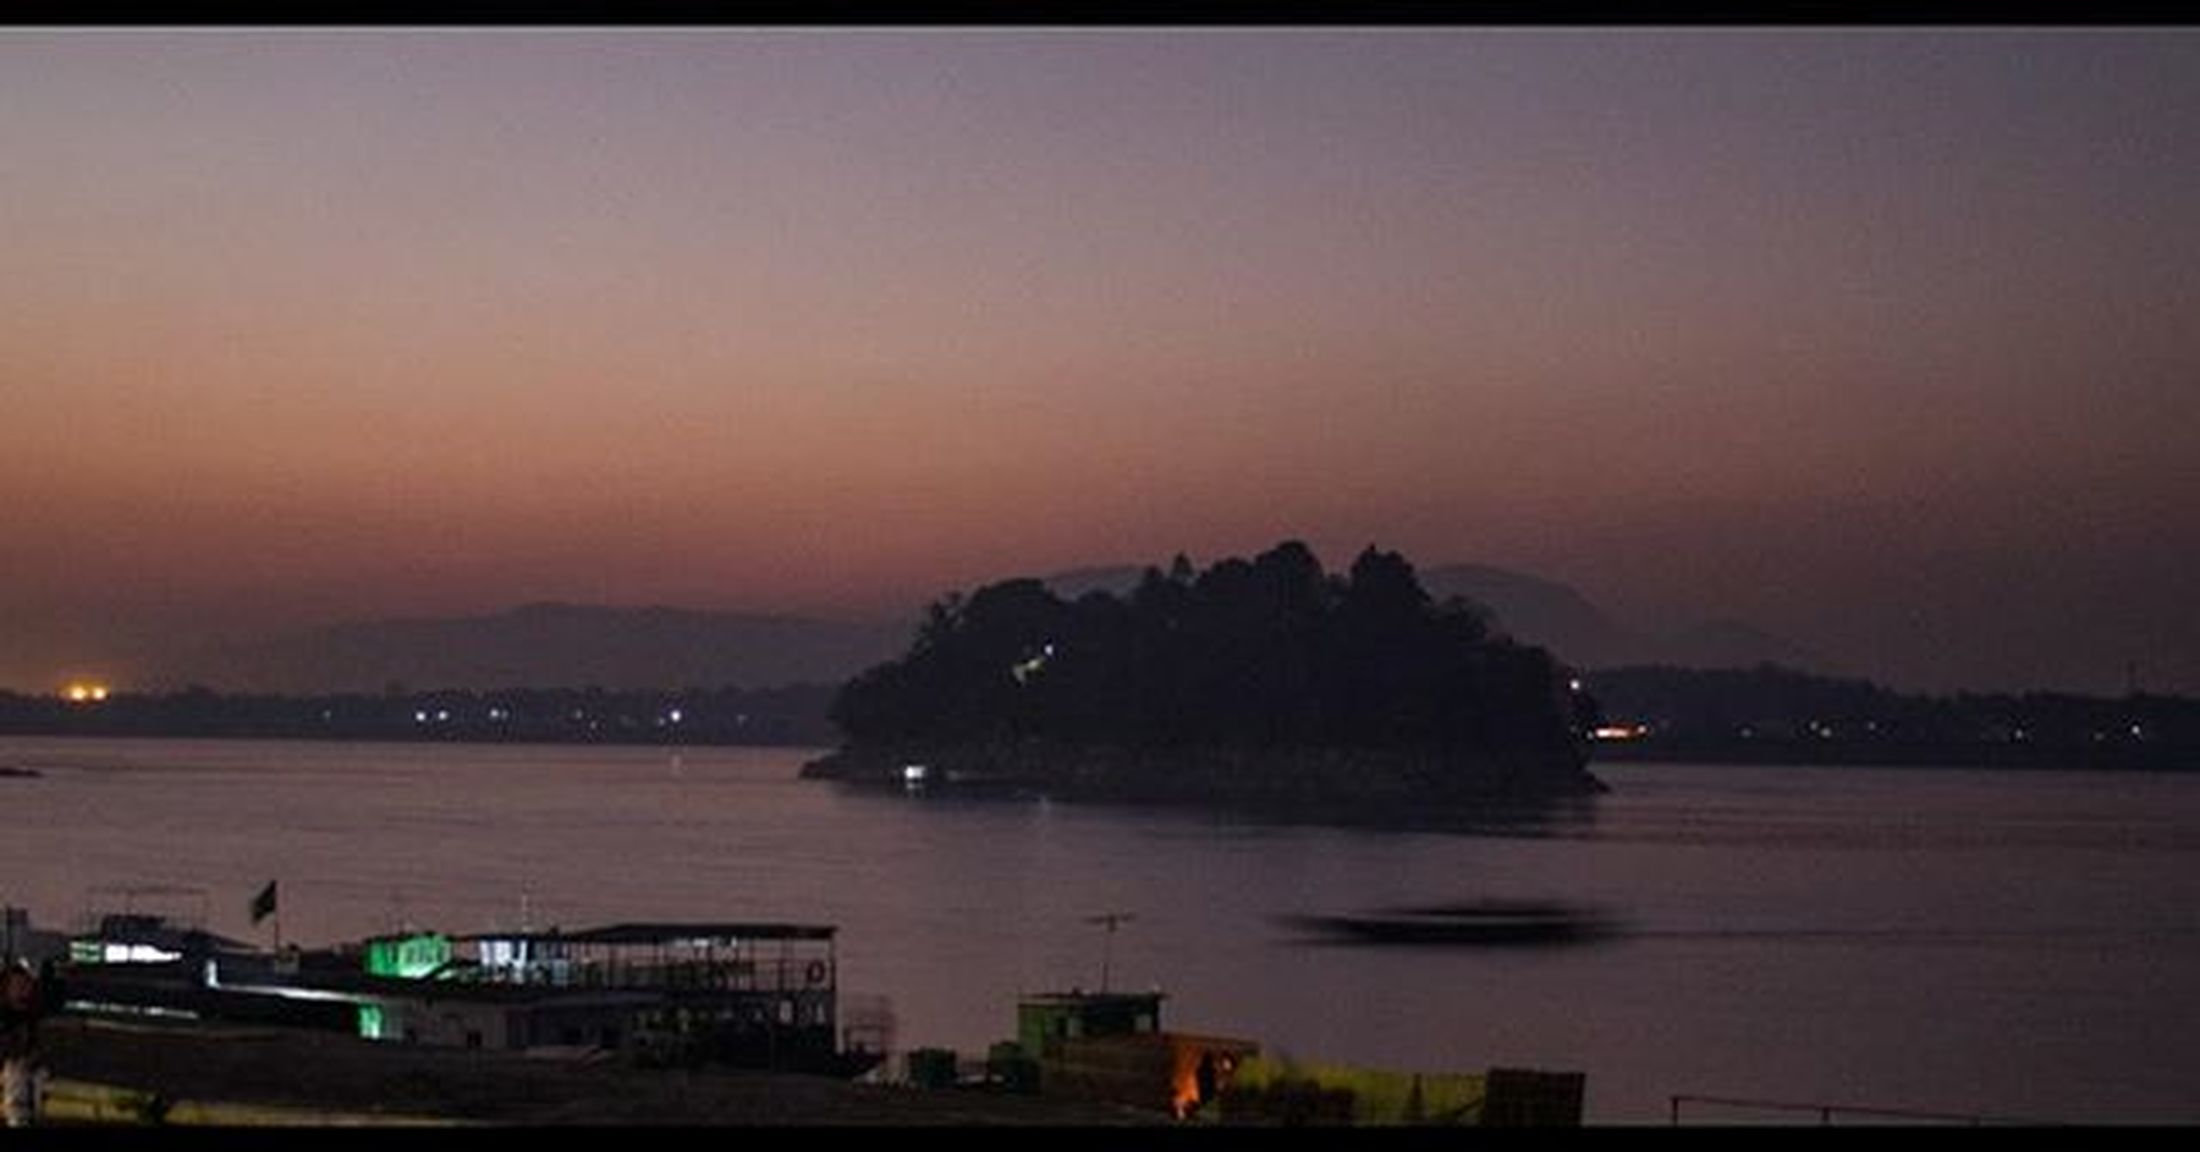 Guwahati Backpacking Brahmaputrapromenade Evening Sunset Island Boat River Riverferry Northeastindia